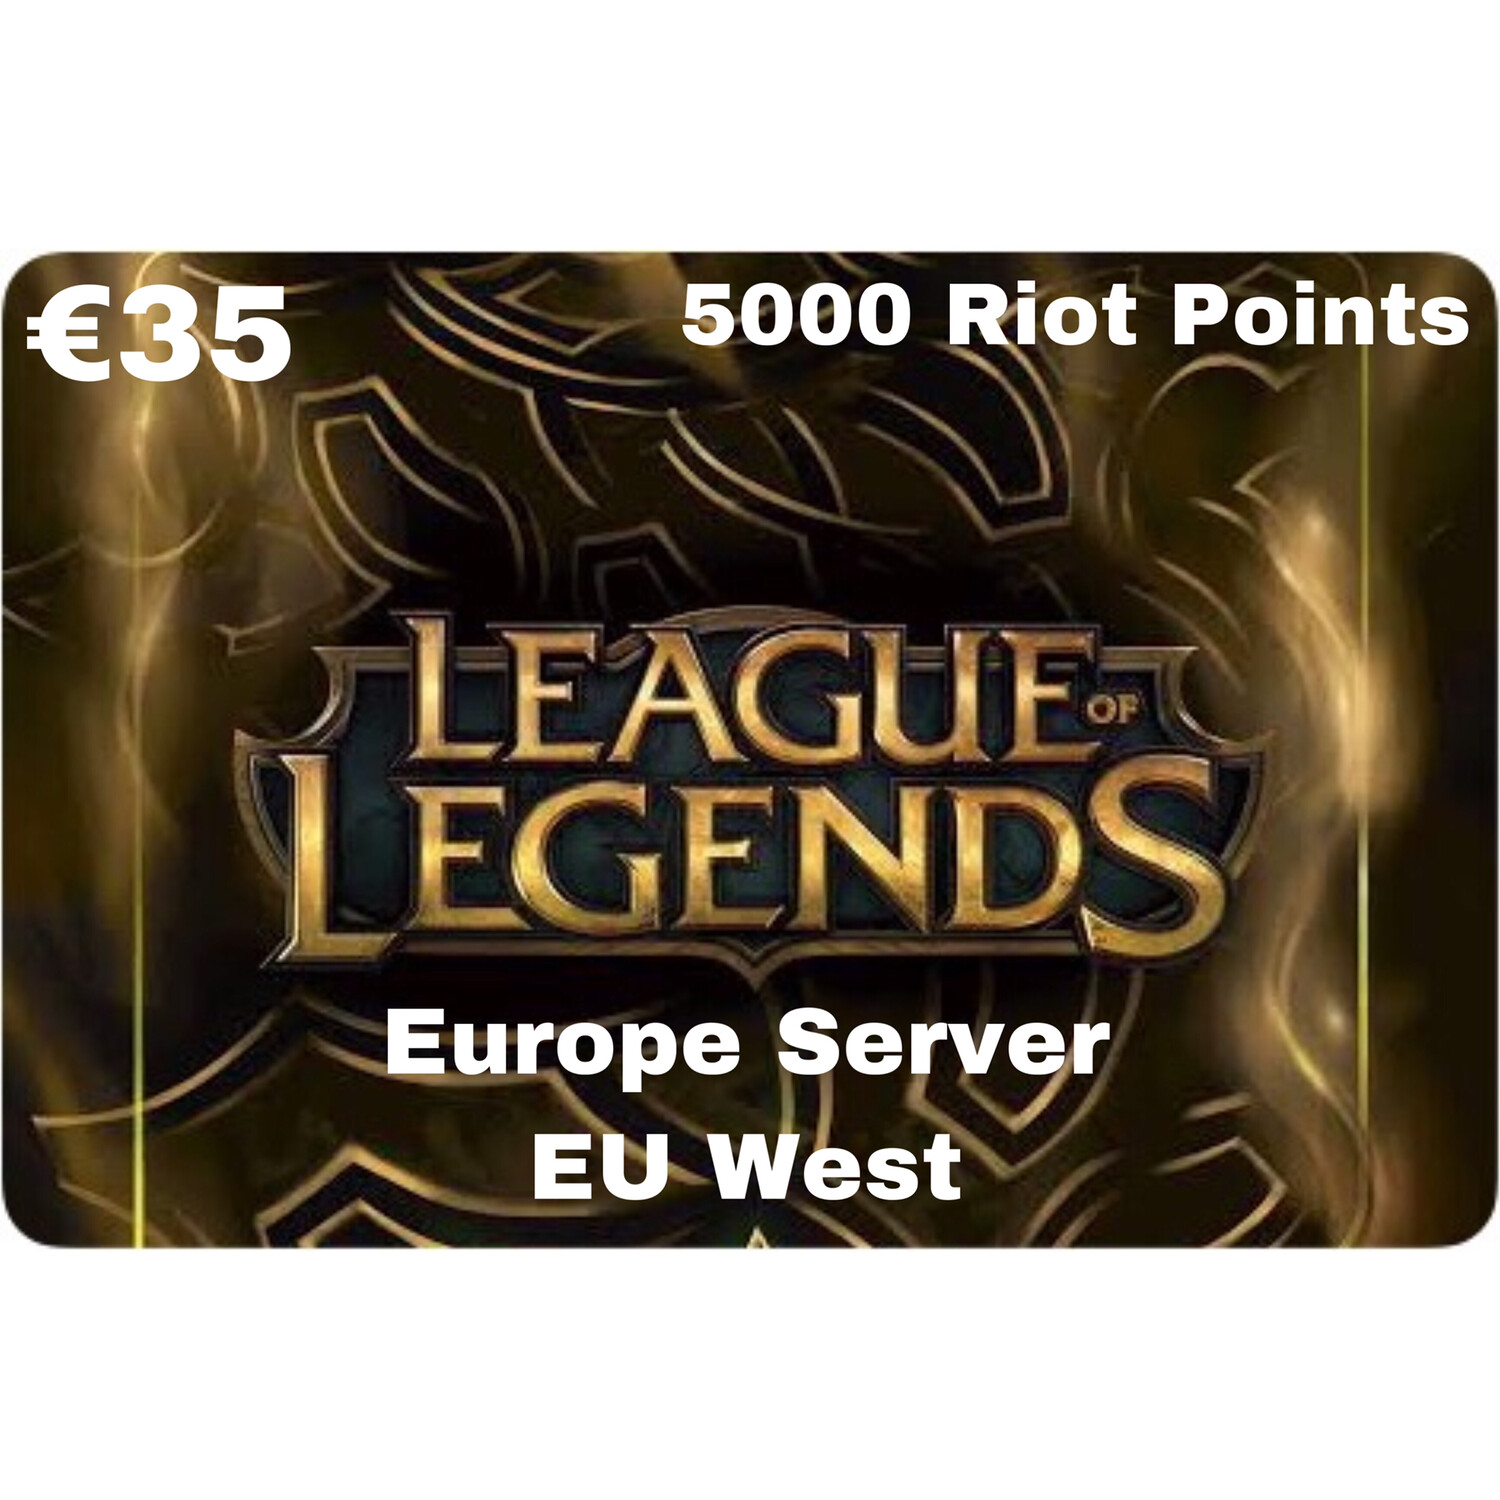 League of Legends €35 Europe Server 5000 Riot Points EU West